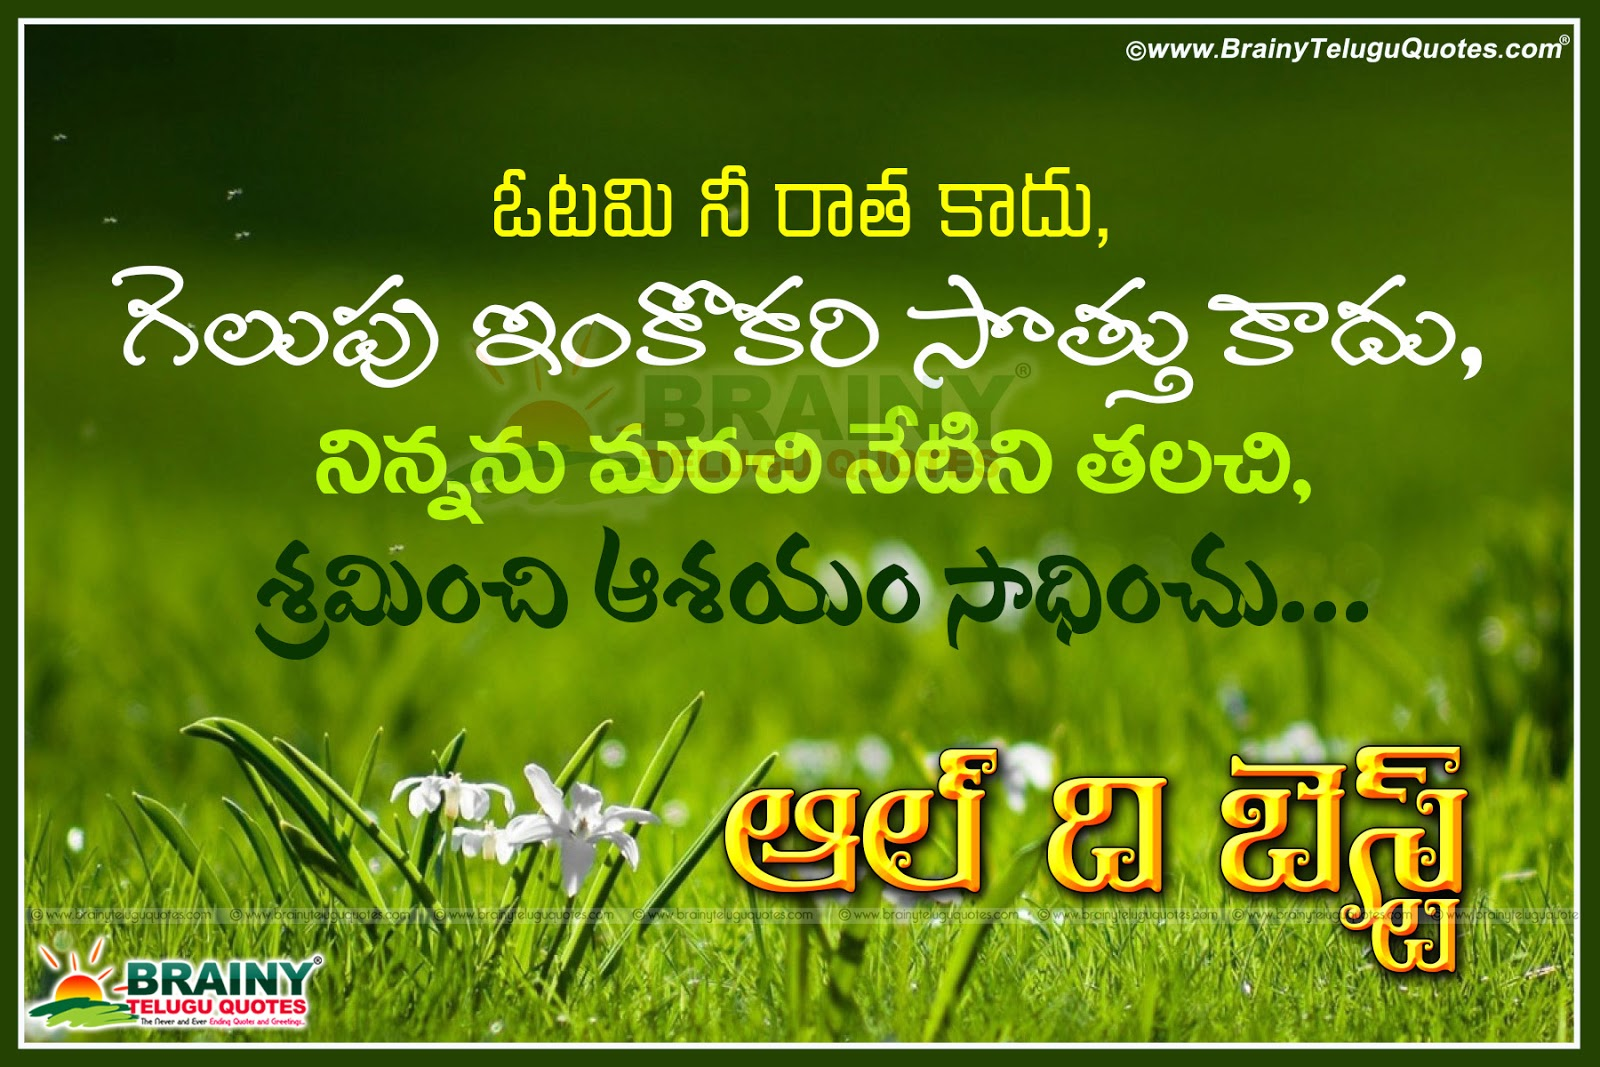 All the best telugu greetings online with awesome hd wallpapers best telugu prema kavithalu for sms whatsapp all the best quotes in telugu all the kristyandbryce Image collections